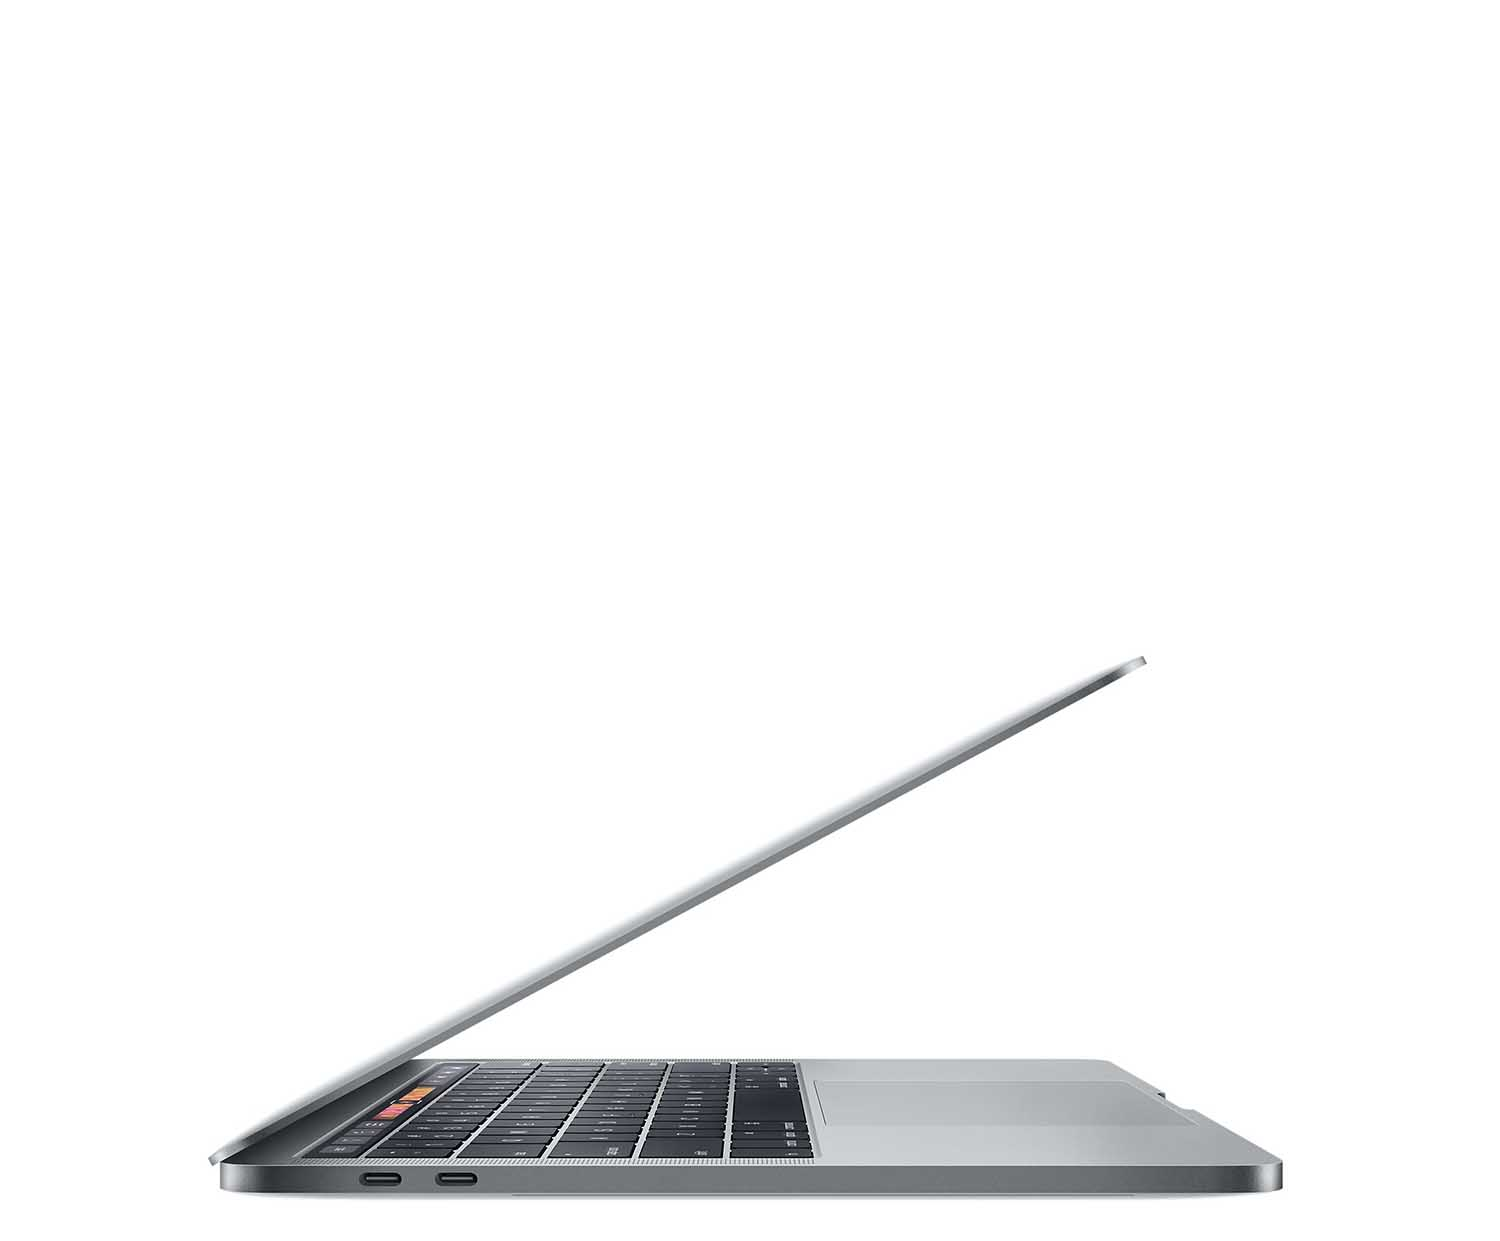 macbook pro 13 mit touch bar 3 5 ghz core i7 1 tb ssd. Black Bedroom Furniture Sets. Home Design Ideas